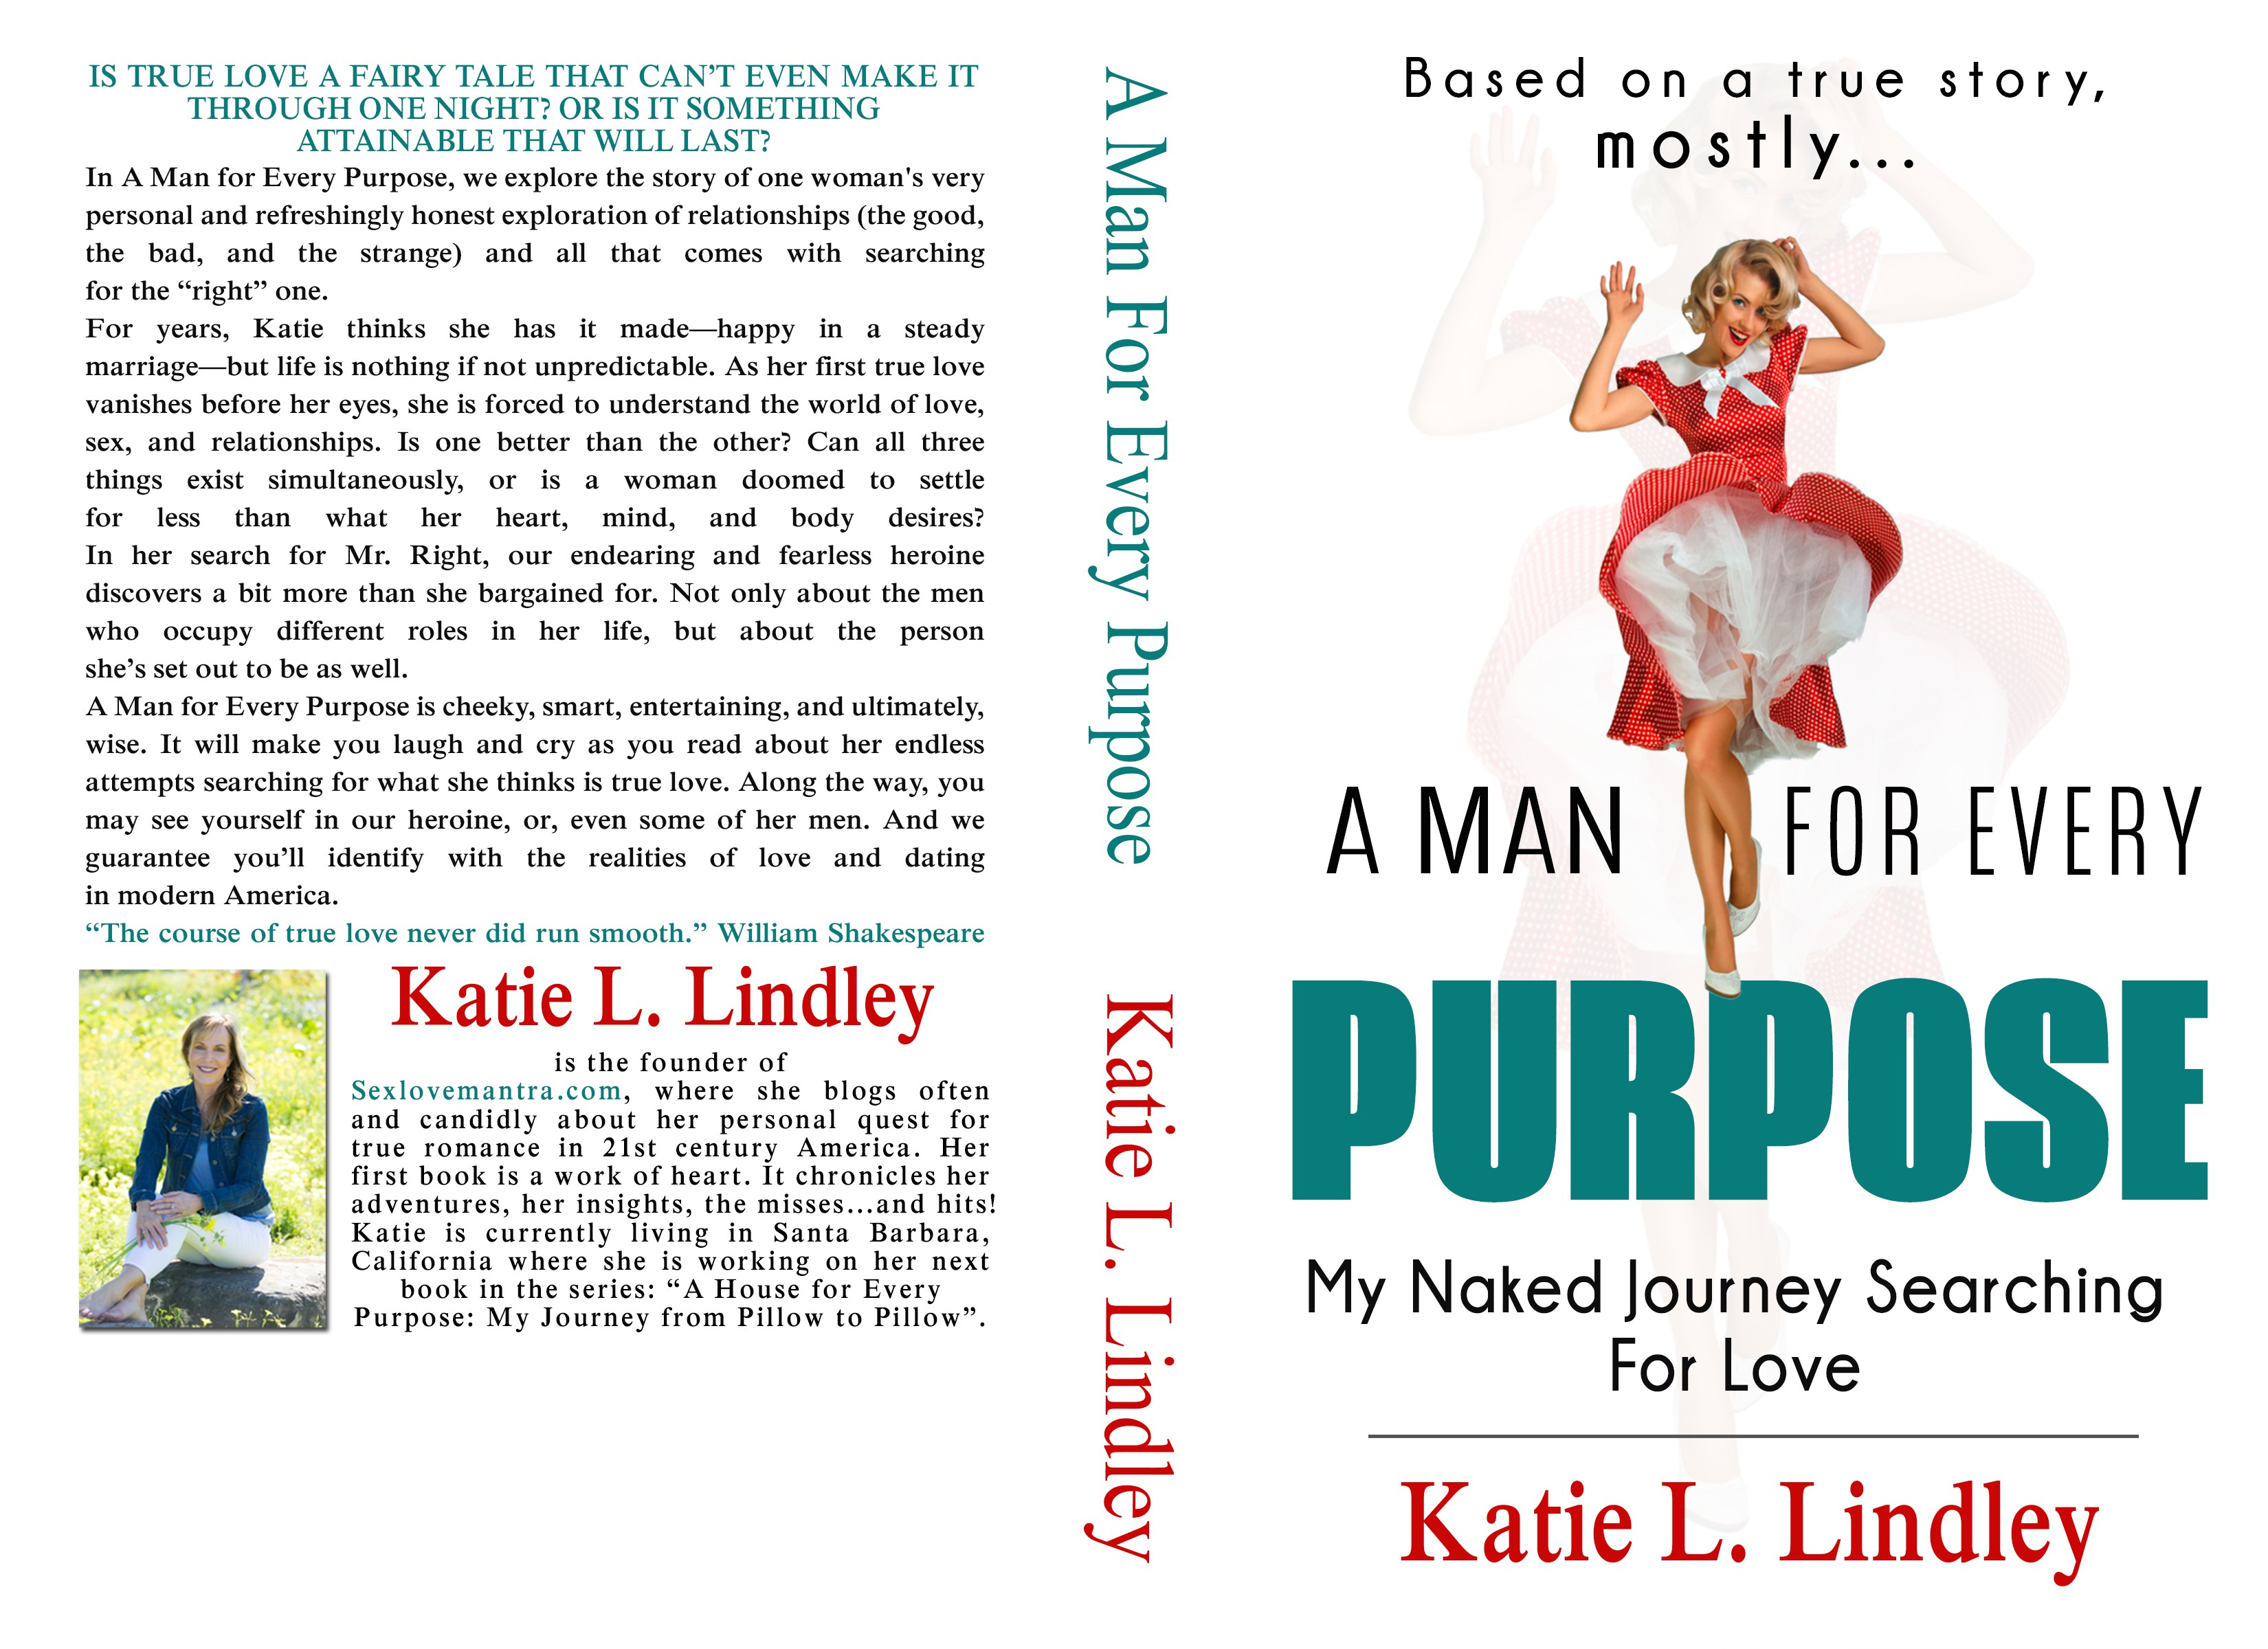 A Man For Every Purpose... My Naked Journey Searching For Love